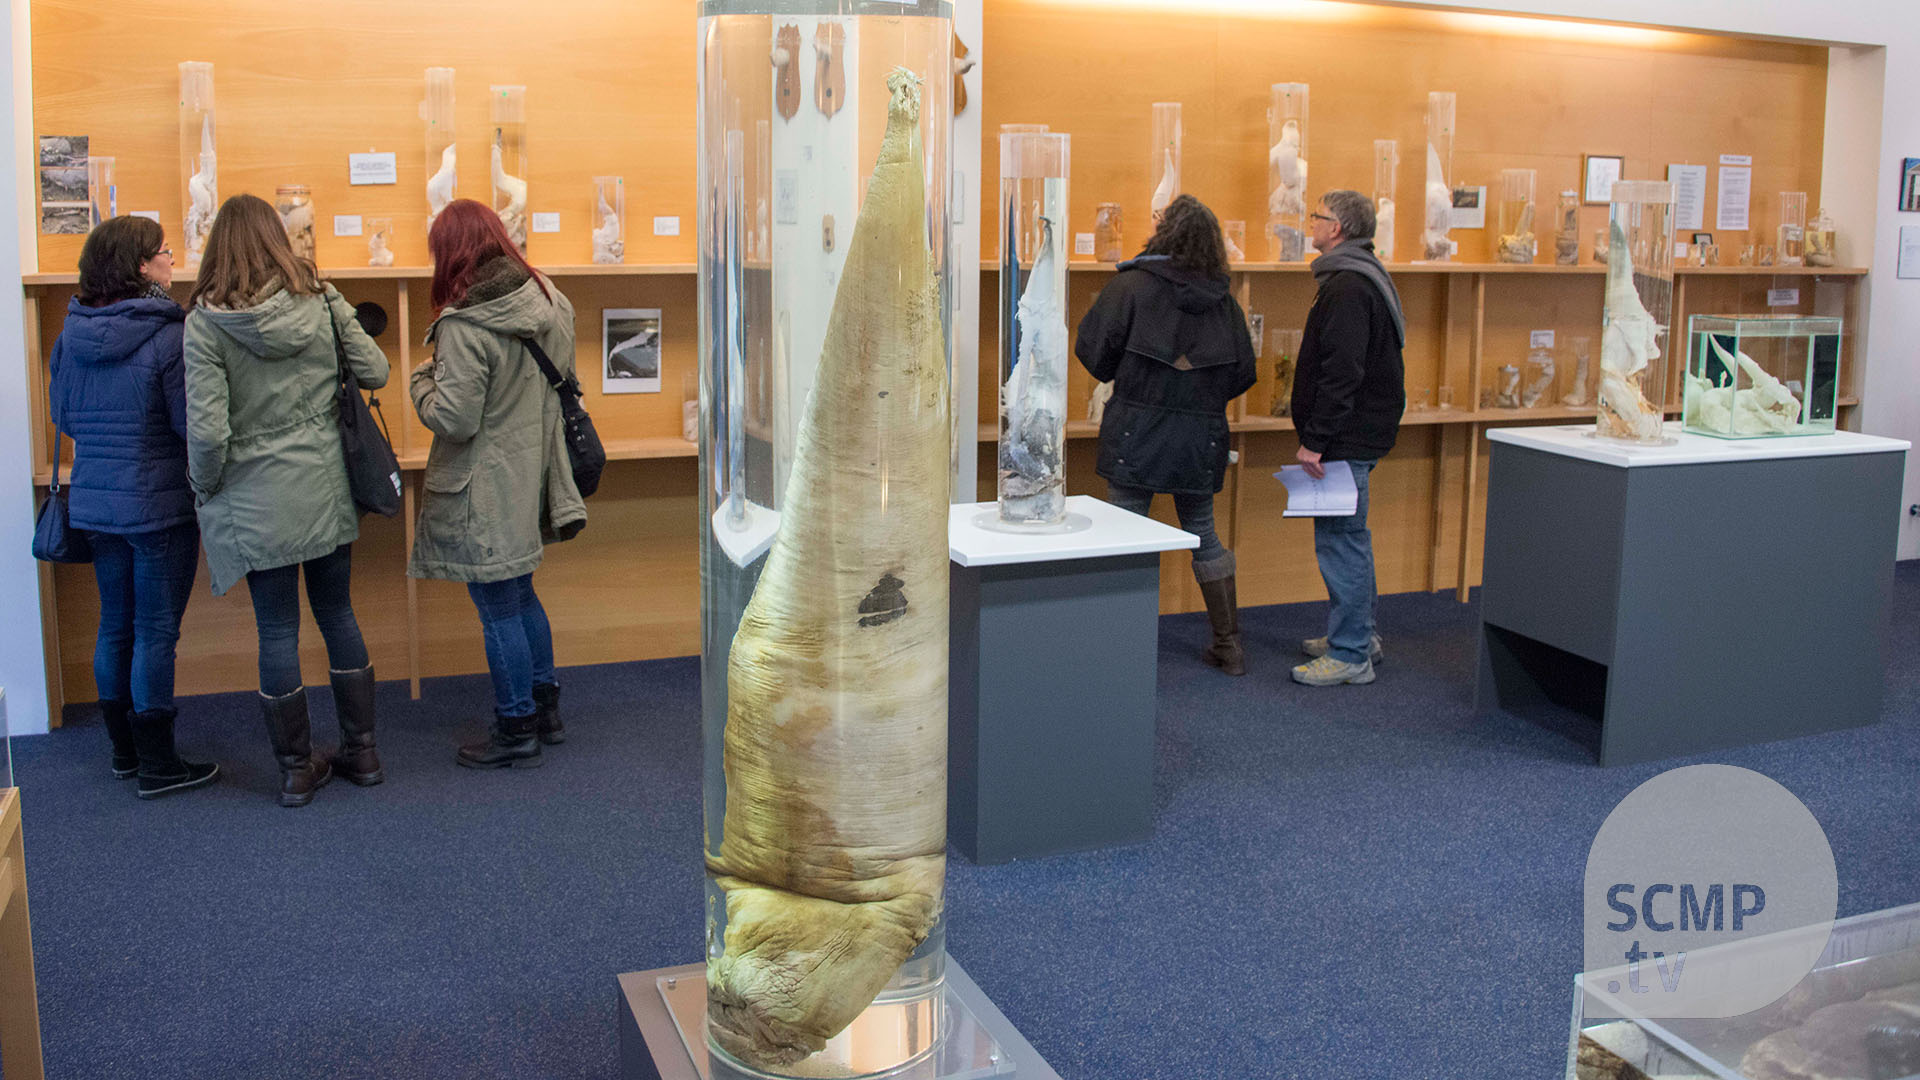 Iceland breaks taboo with world's largest penis museum | South China  Morning Post